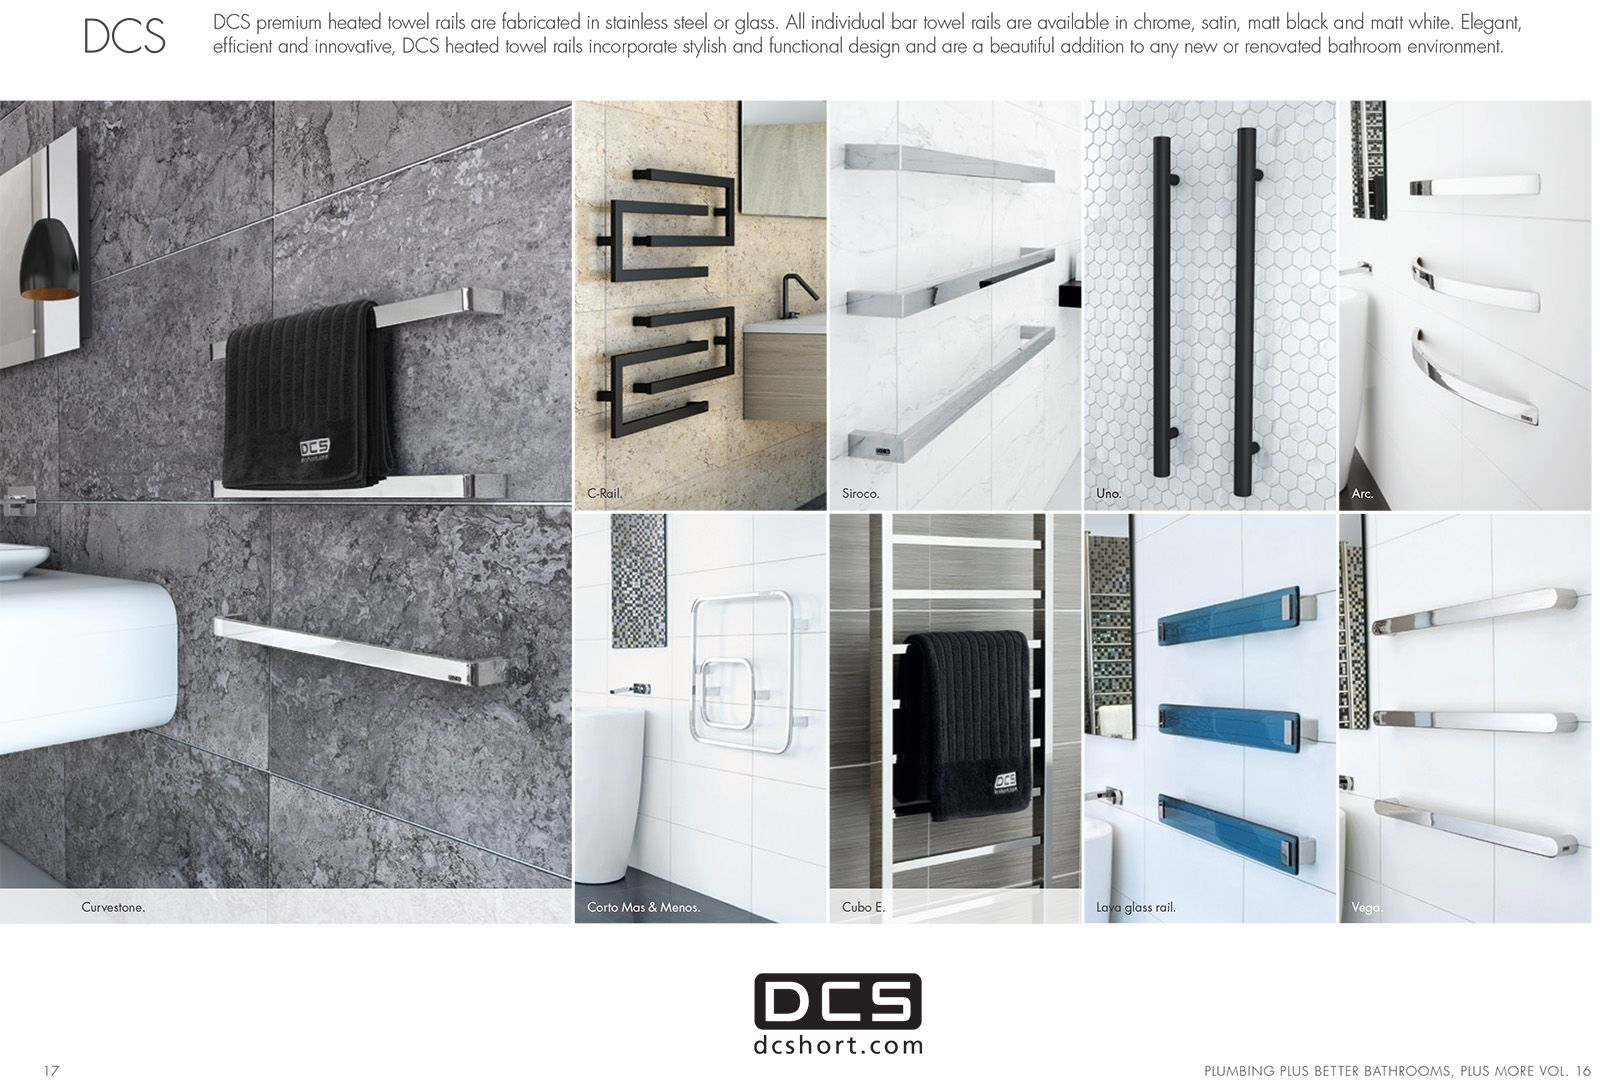 Plumbing Plus Vol.16 - DCS Heated Towel Rails.